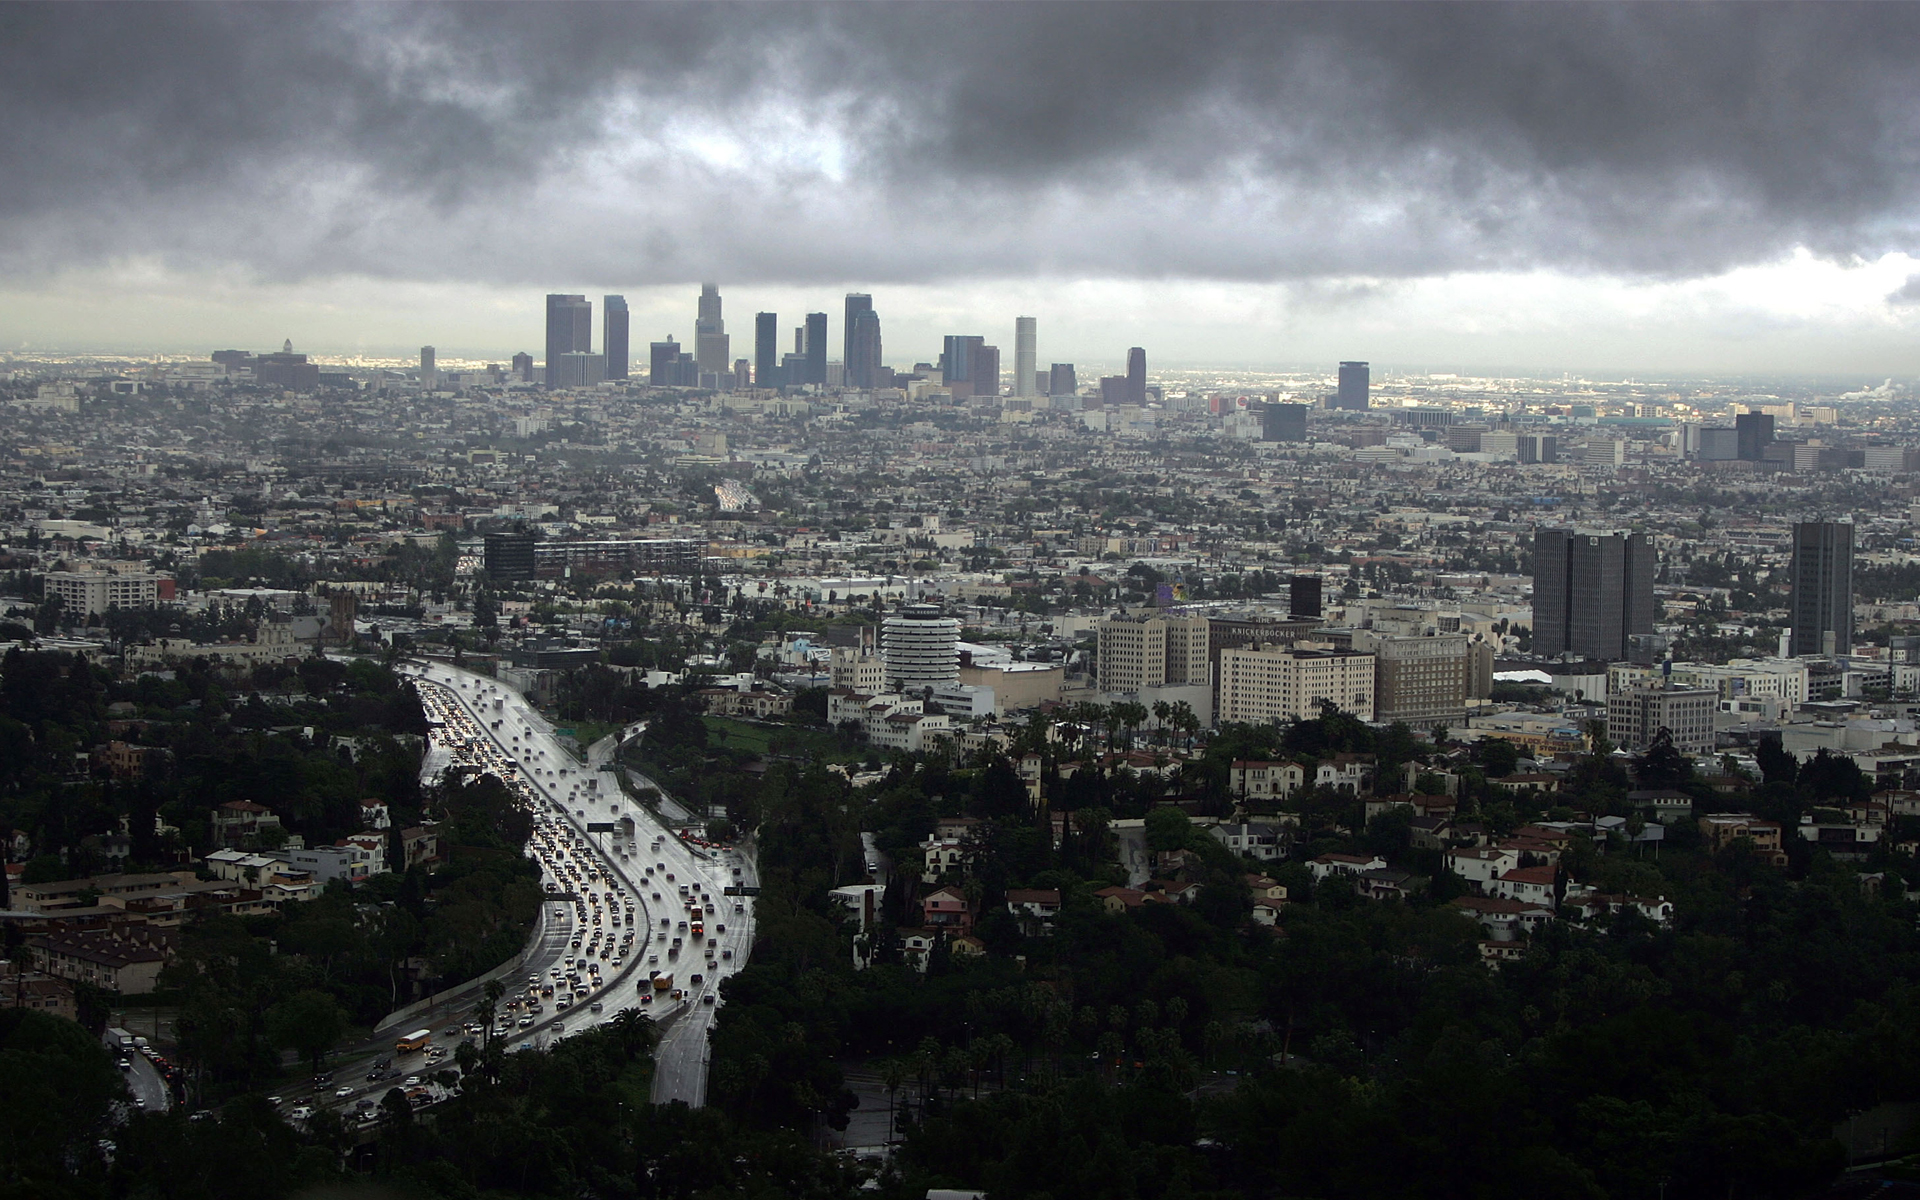 los angeles citys images